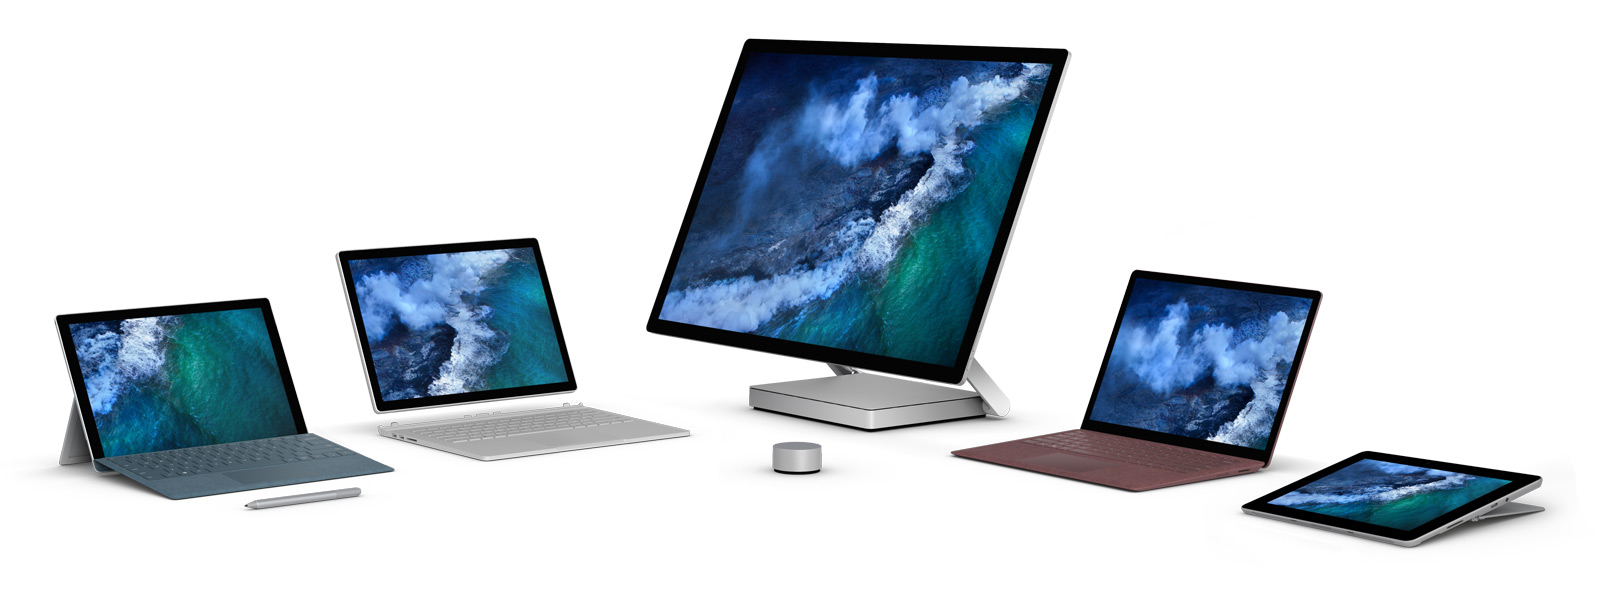 Surface 设备家族包括 Surface Pro、Surface Book 2、Surface Studio、Surface Laptop 和 Surface Go